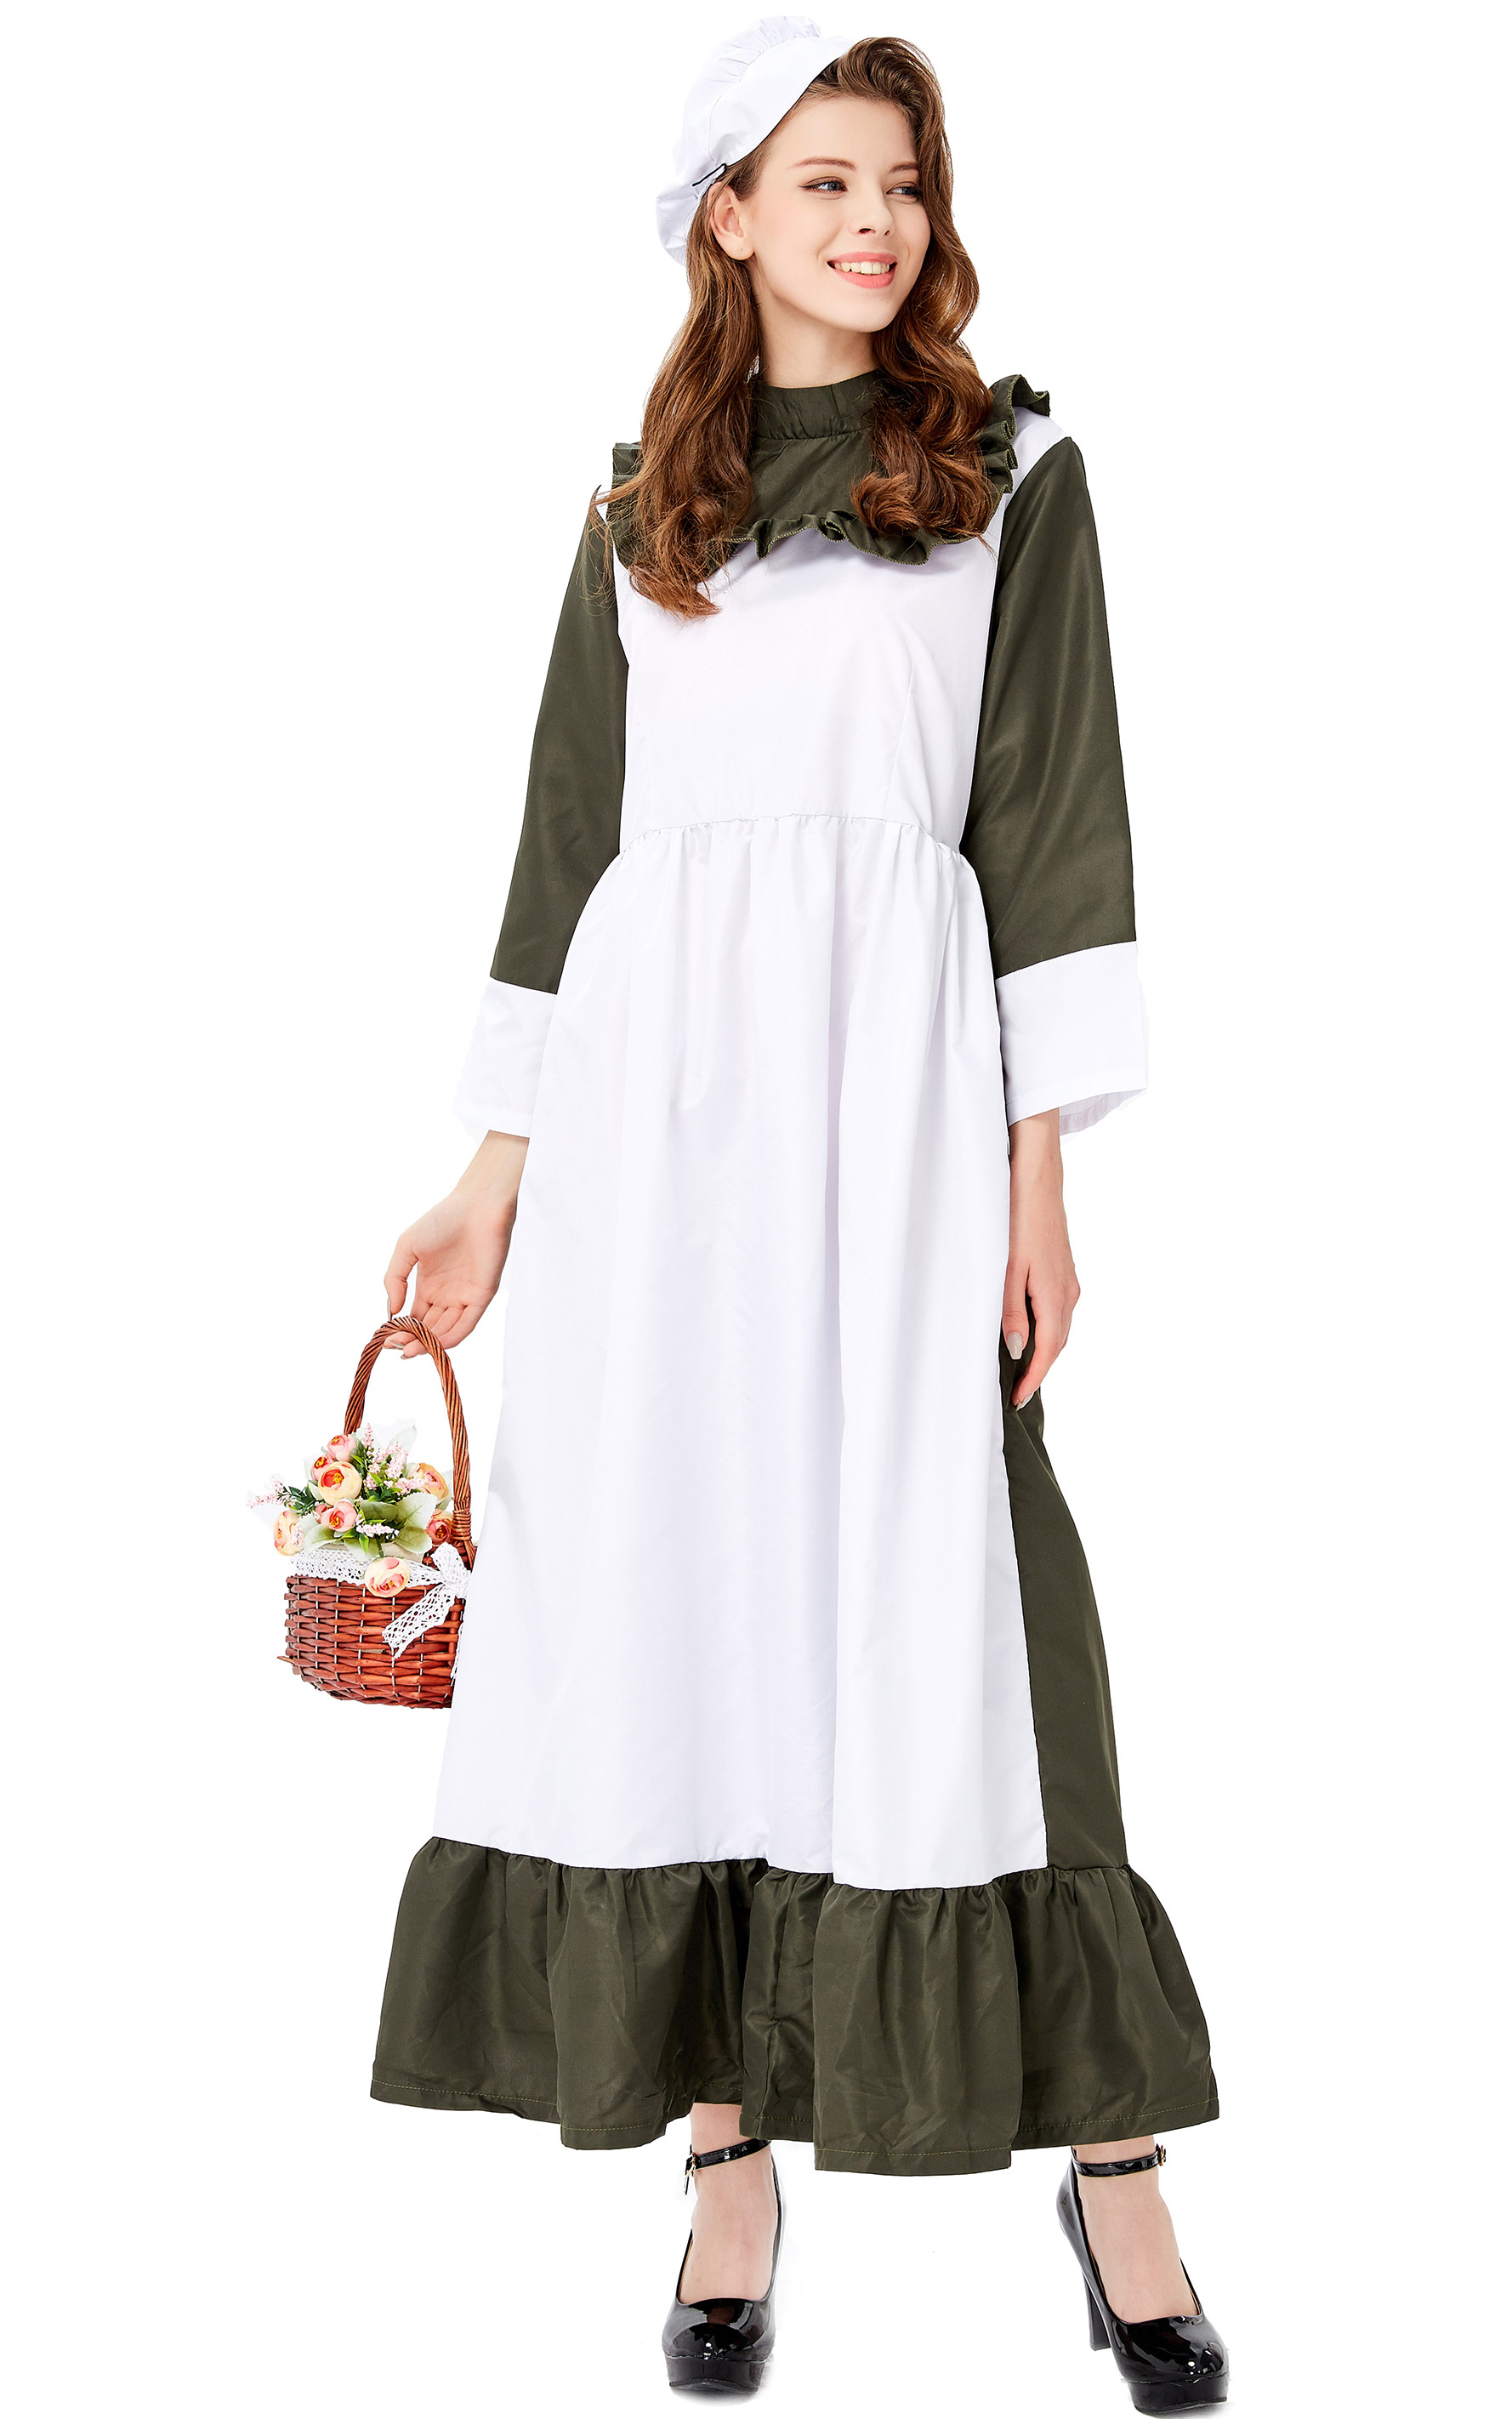 F1935 Traditional Housemaid Long Dress Adult Cosplay Party Costume